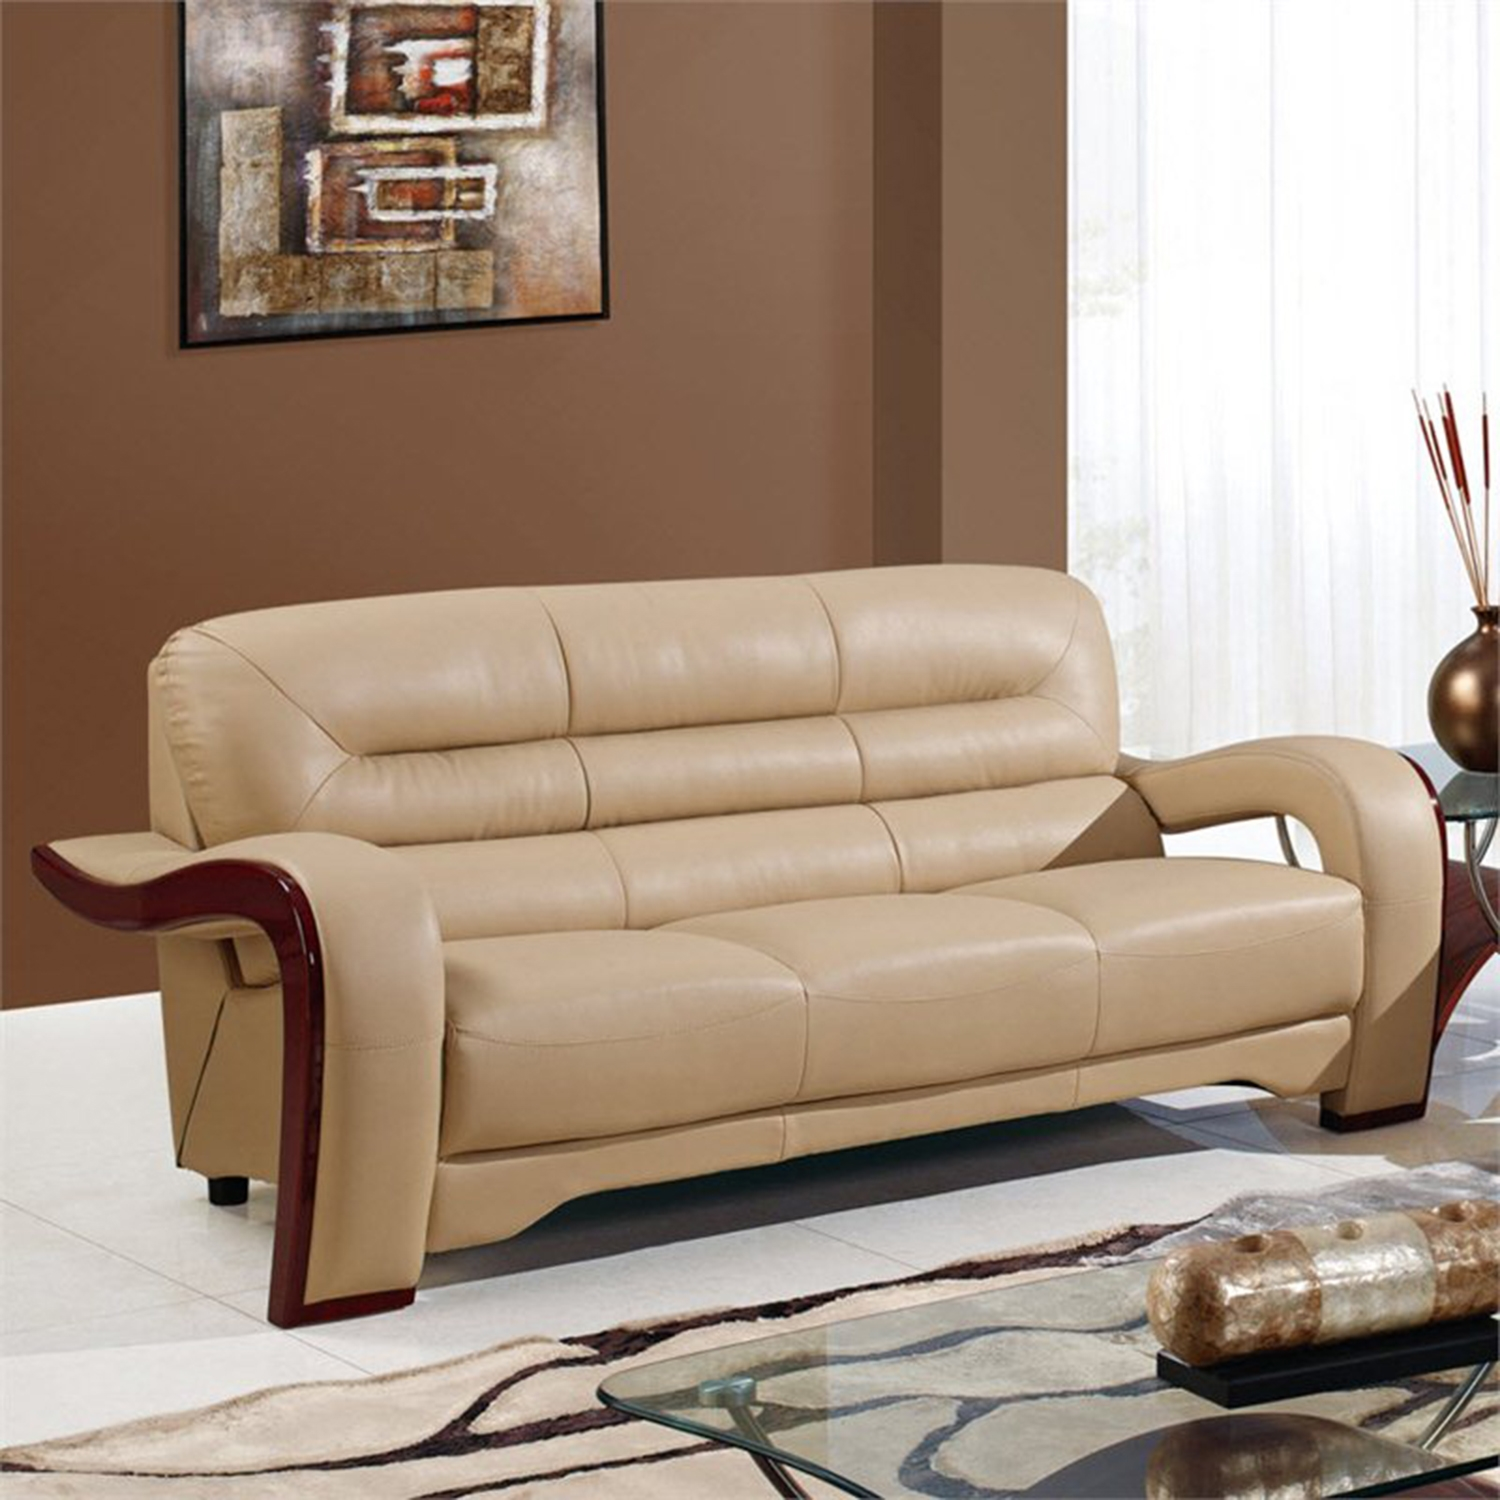 Devin Leather Sofa in Cappuccino with Mahogany Legs - GLO-U992-RV-S